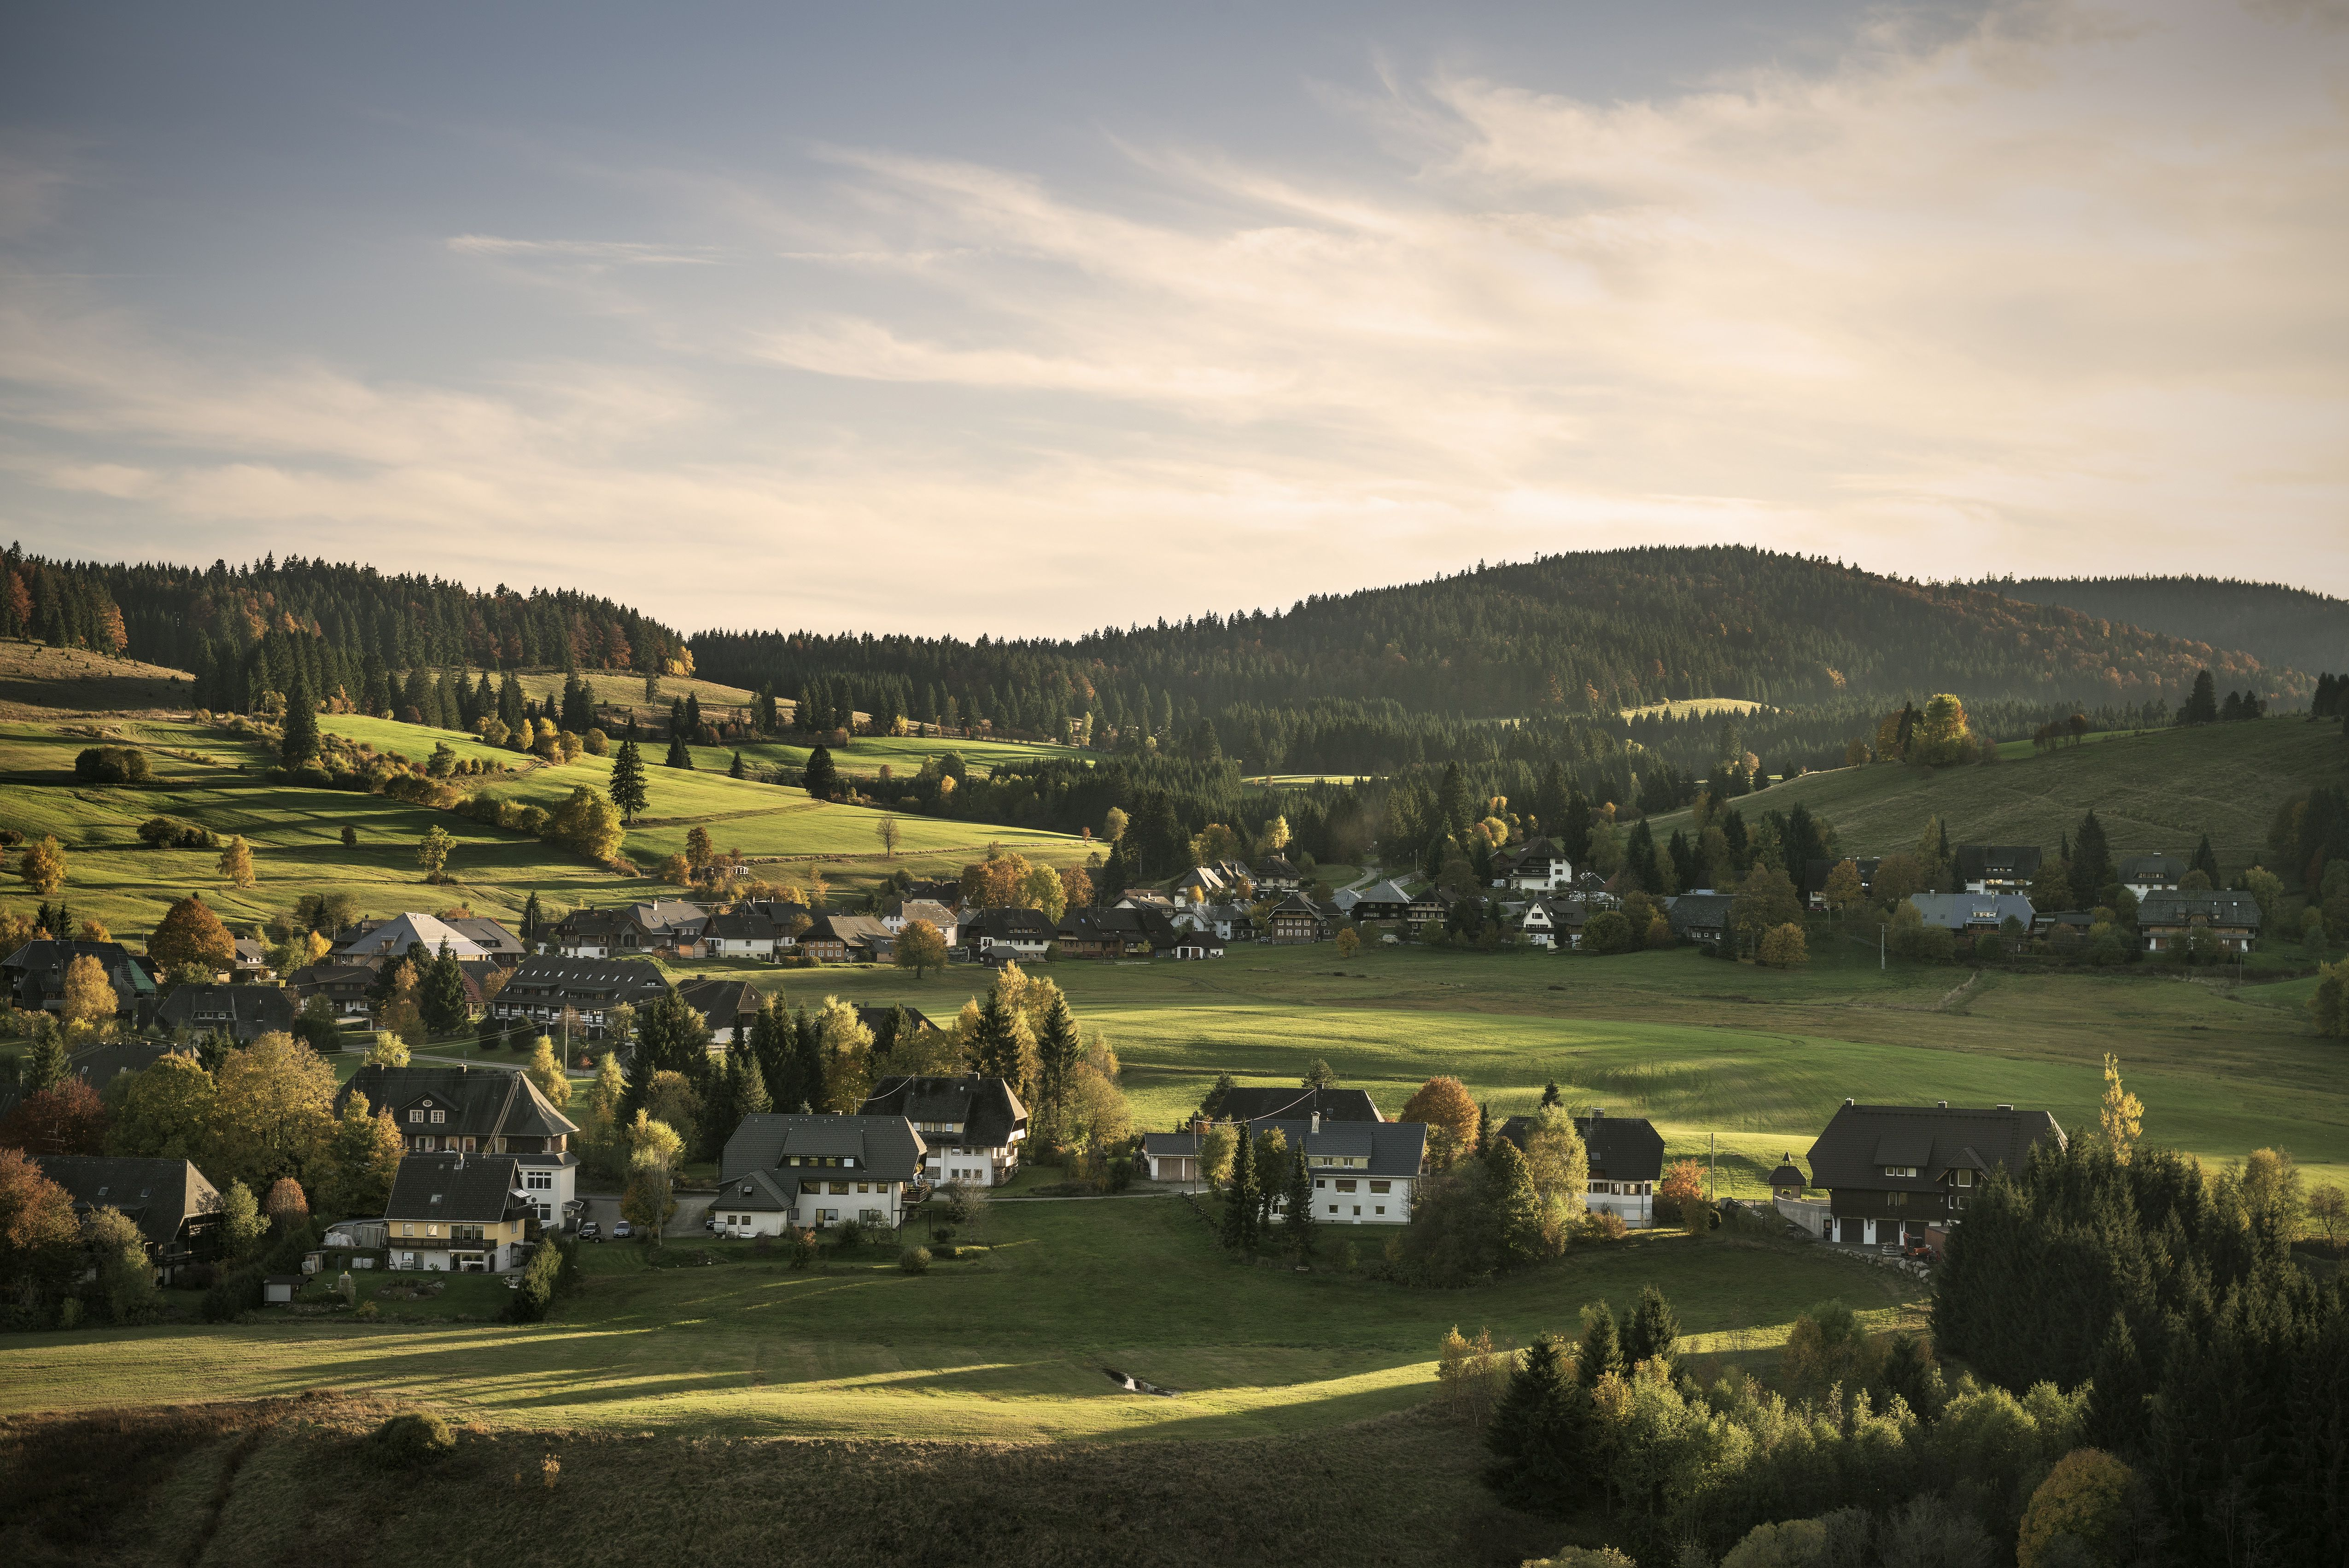 View of a typical village near the Black Forest